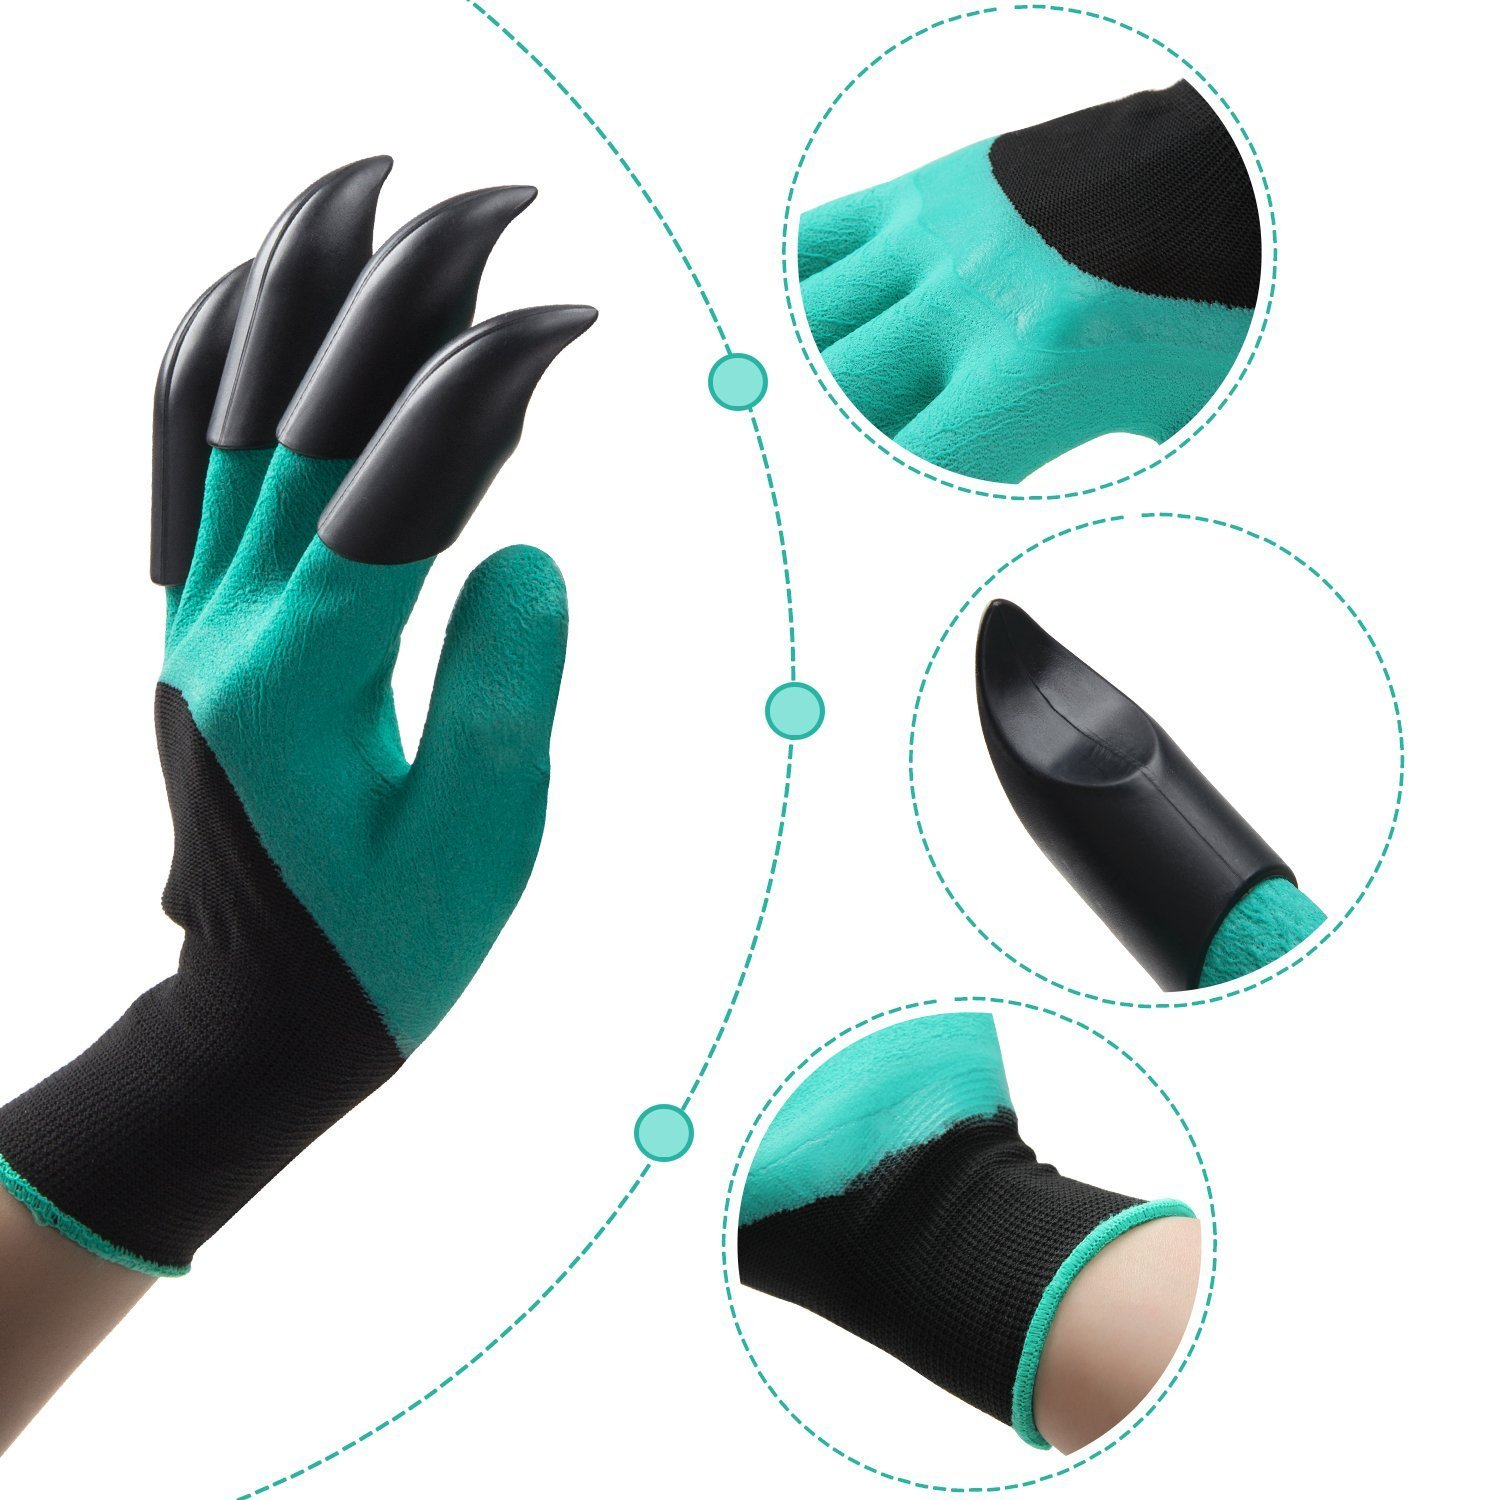 Meanch Handed Garden Genie Gloves with Claws on Both Hands for Digging